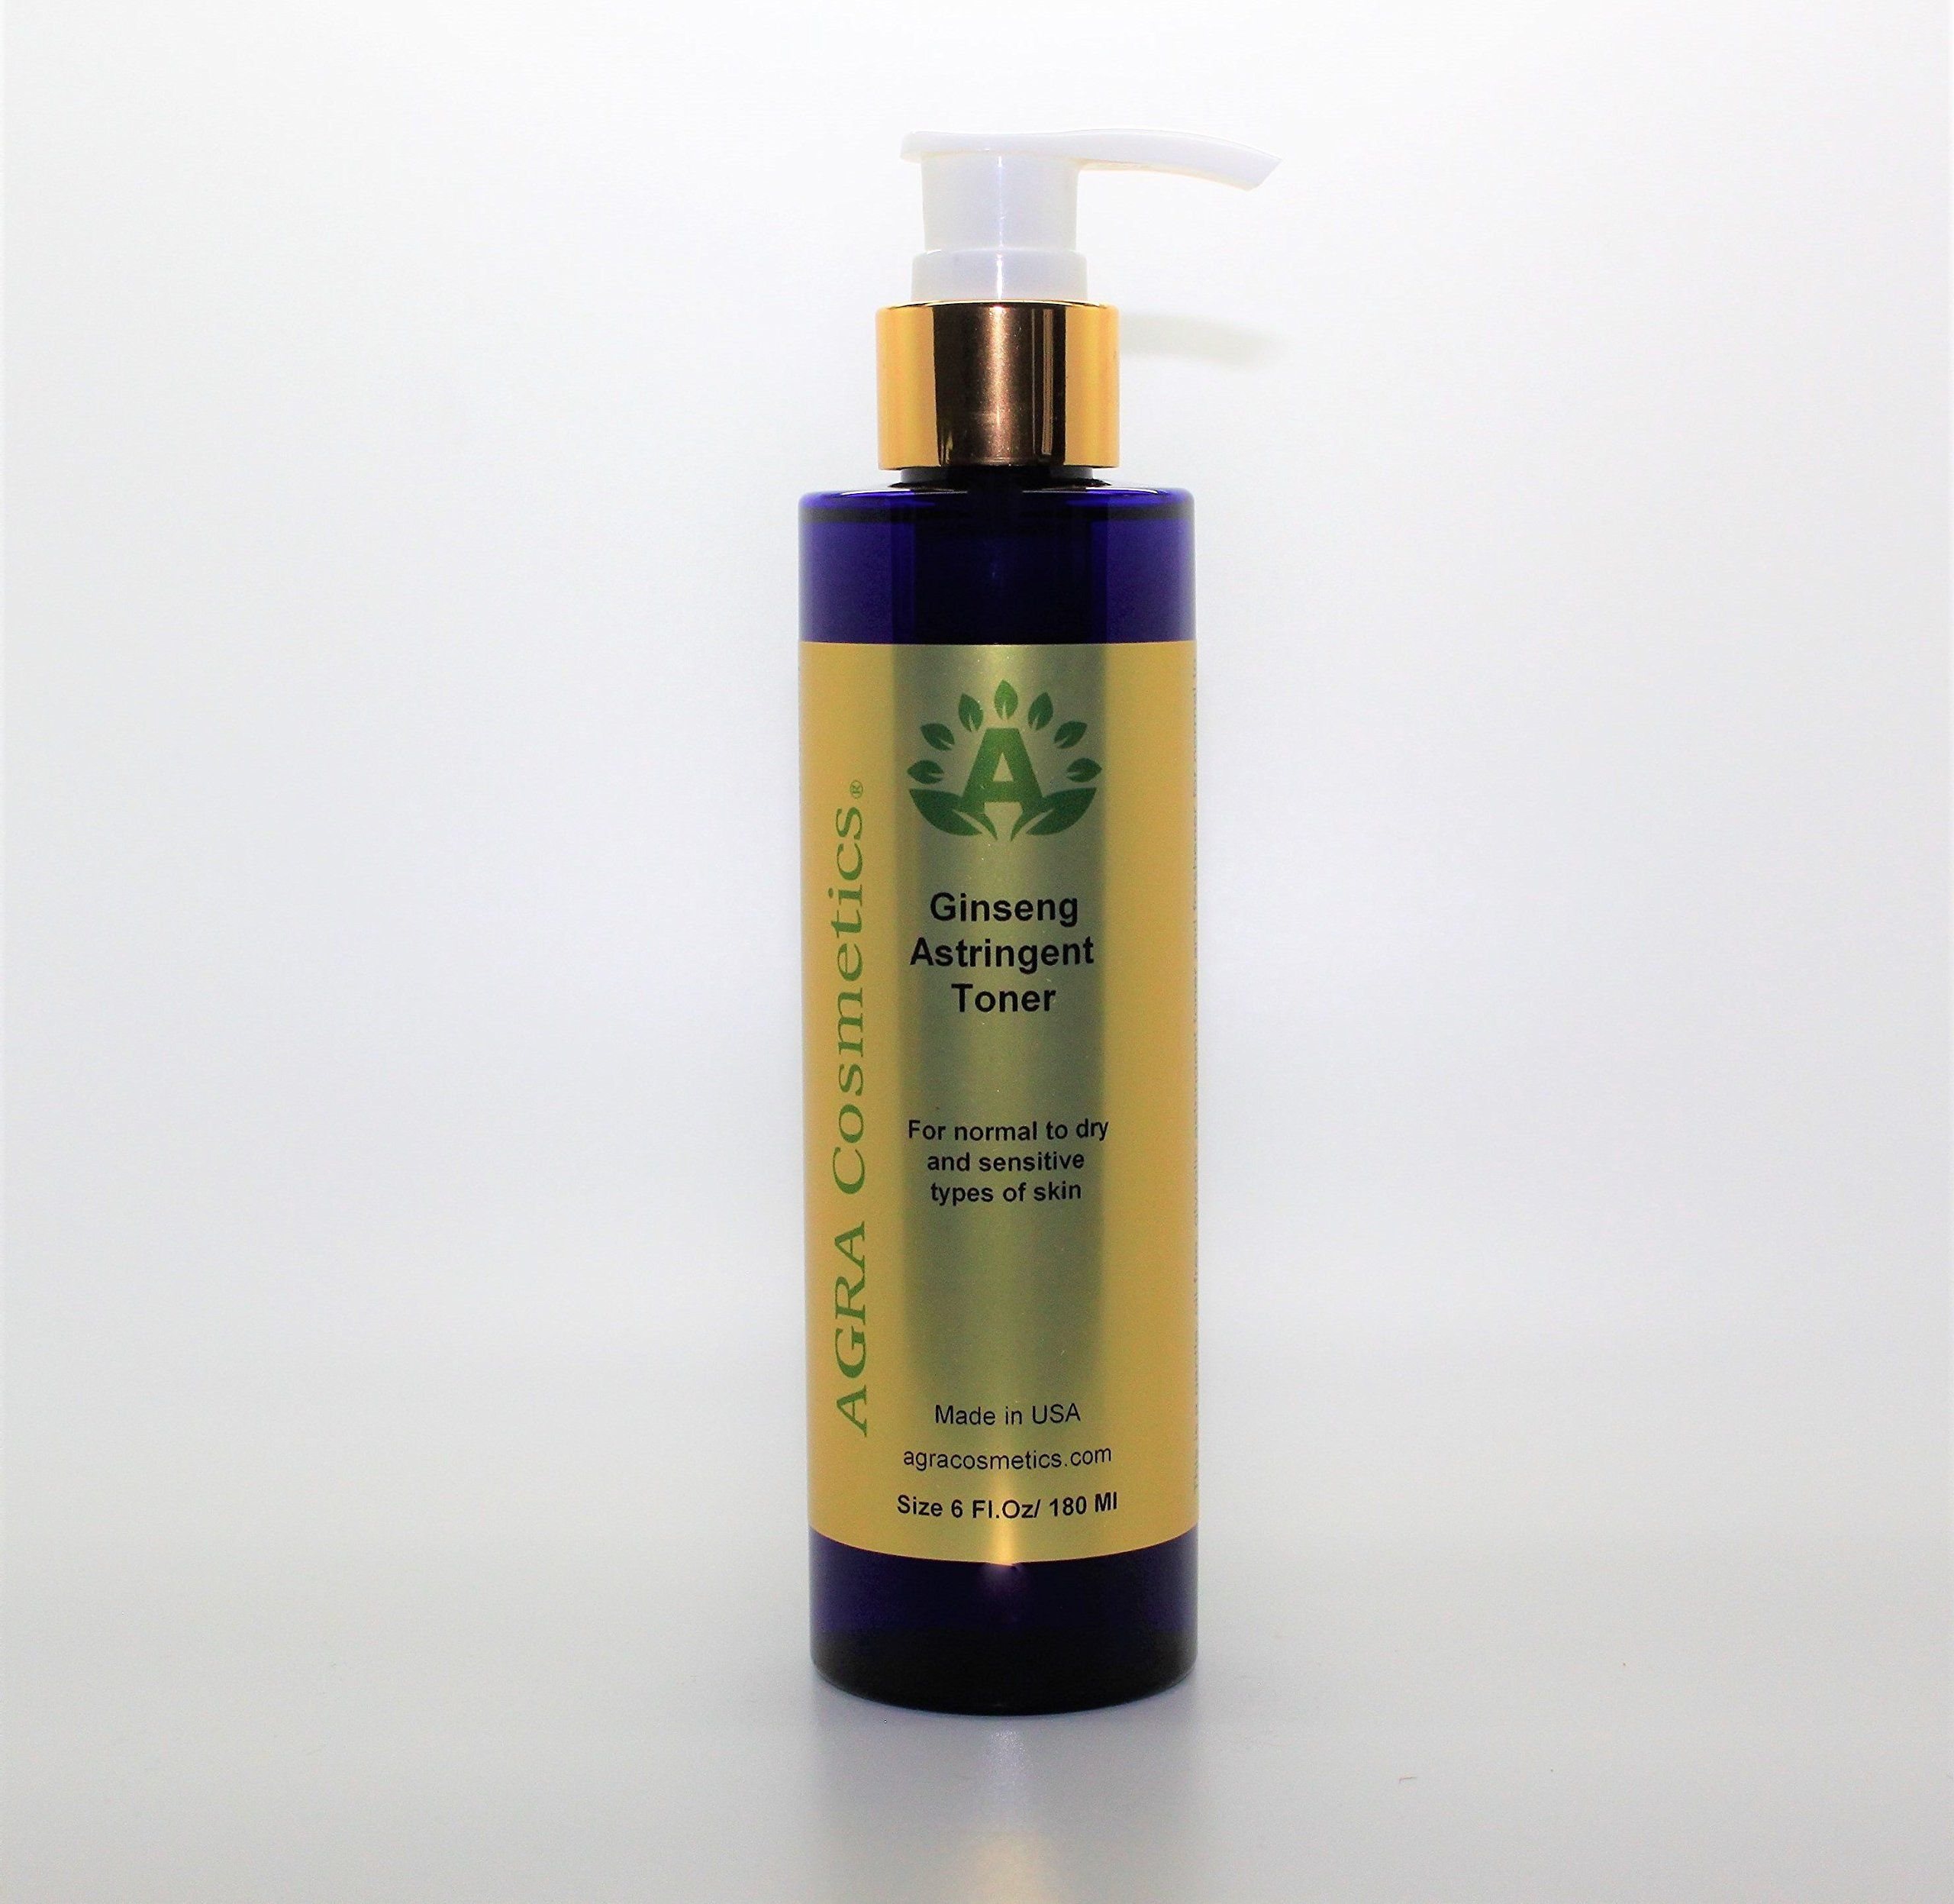 Agra Cosmetics Ginseng Astringent Toner 6 Fl Oz Avoid Contact With Eyes And Mucous Membranes Keep Out Of Astringent Toner Face Cleanser Best Face Products